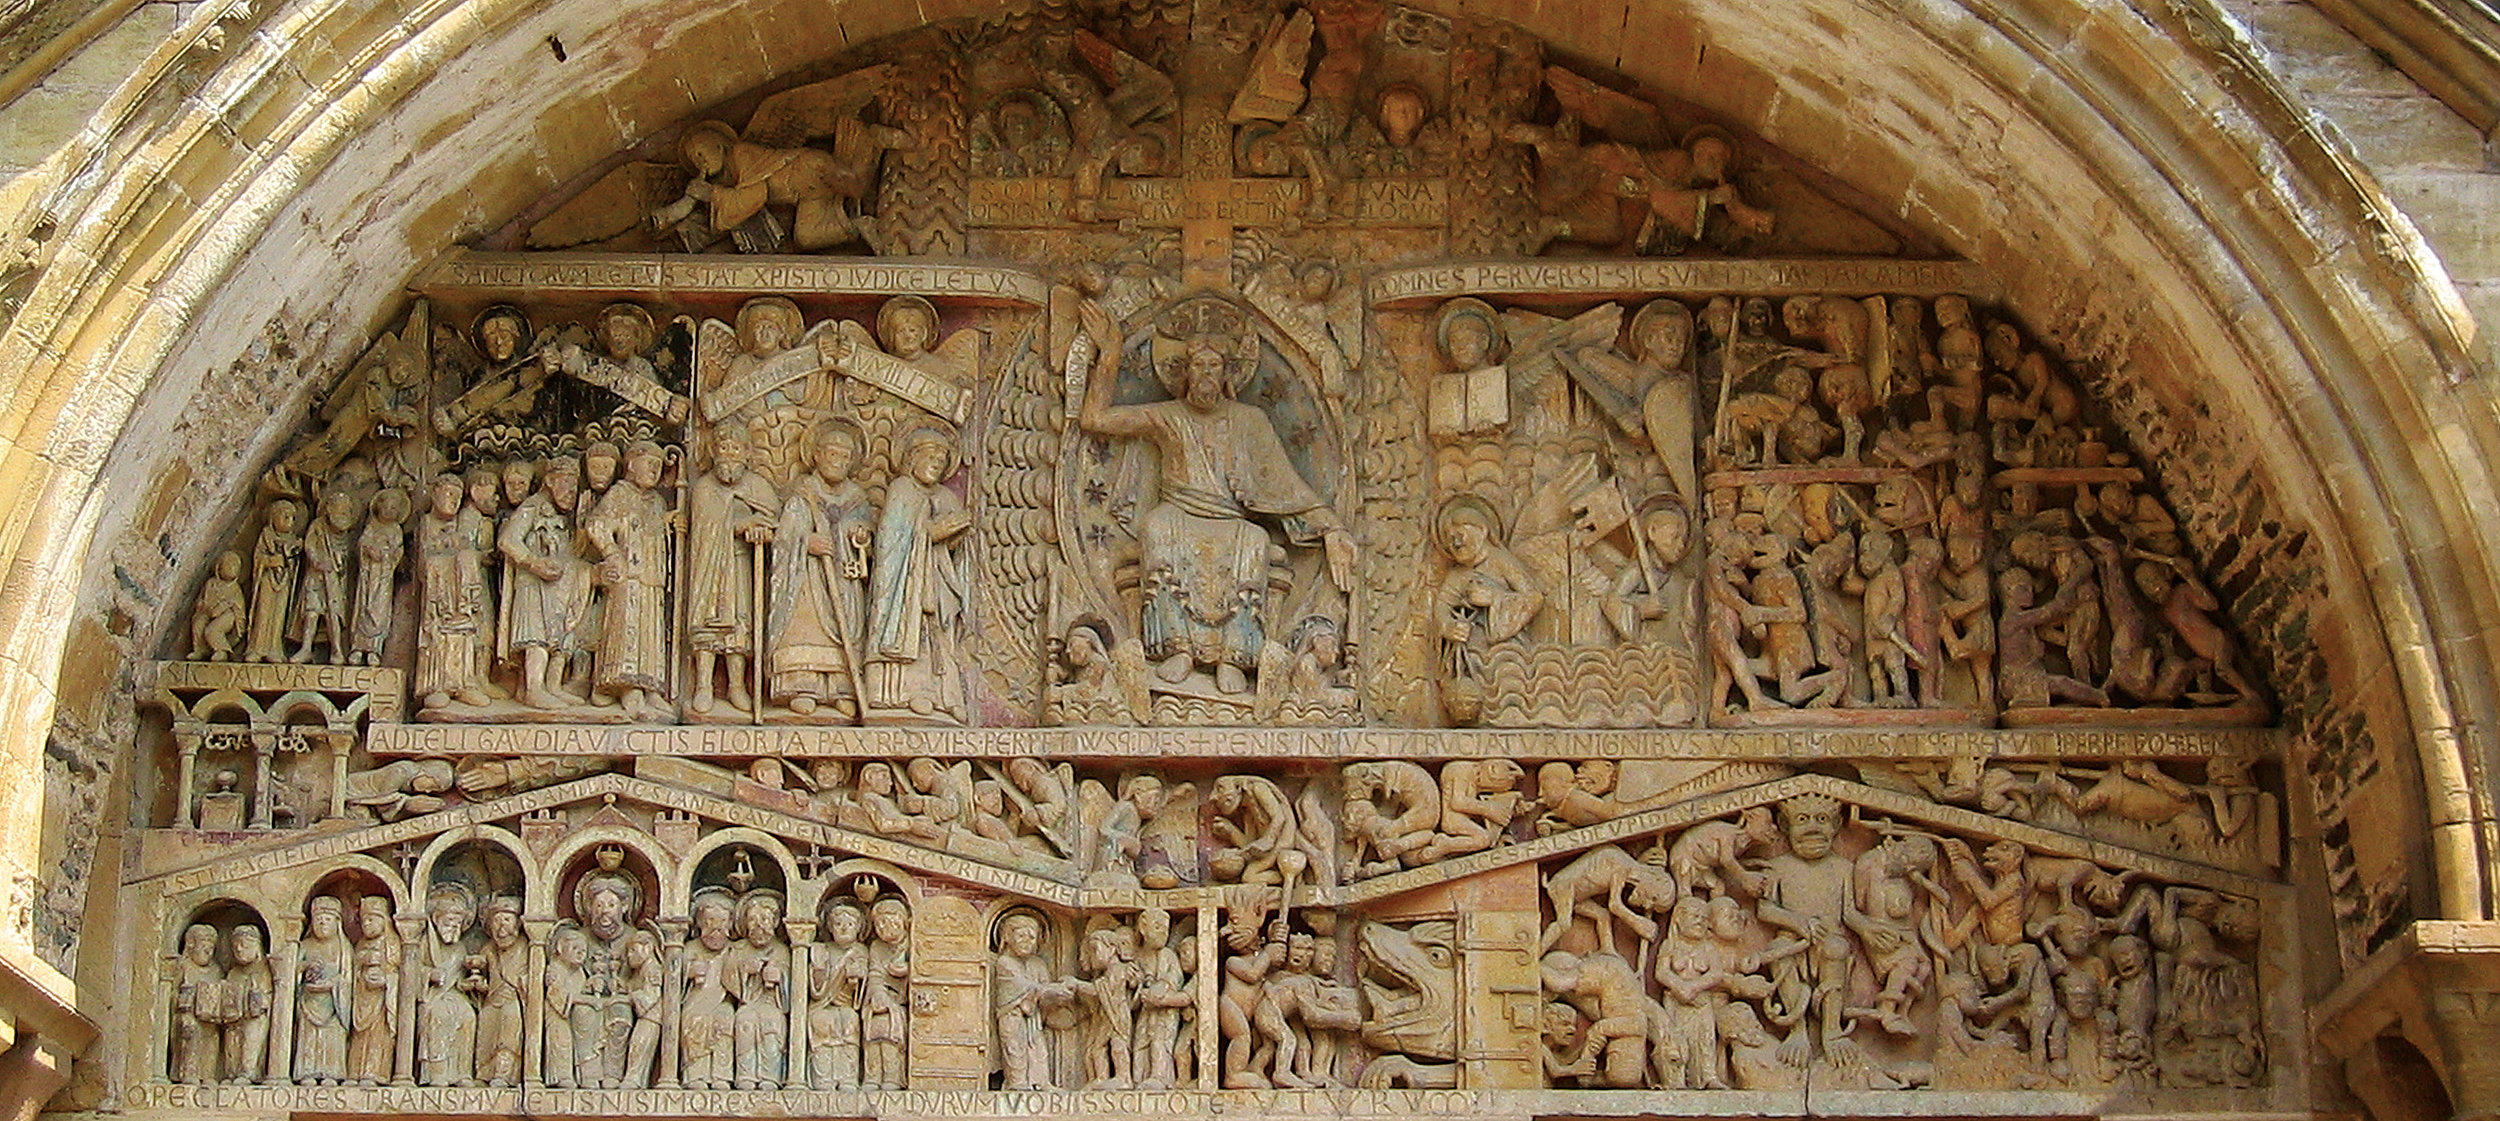 """The Last Judgment (Tympanum of the Church of Sainte-Foy, painted limestone relief, dated early 12th century, shortly after 1107) In the centre of the middle register a mandorla encloses the enthroned Christ. Compare Revelation 4:3, """"there was a rainbow round about the throne."""" Two angels with candles stand guard at the base of the throne. On the left the elect process to the throne: the Virgin Mary first, followed by St. Peter, then Dadon, the hermit who established the first oratory in Conques, a few meters away from this tympanum."""